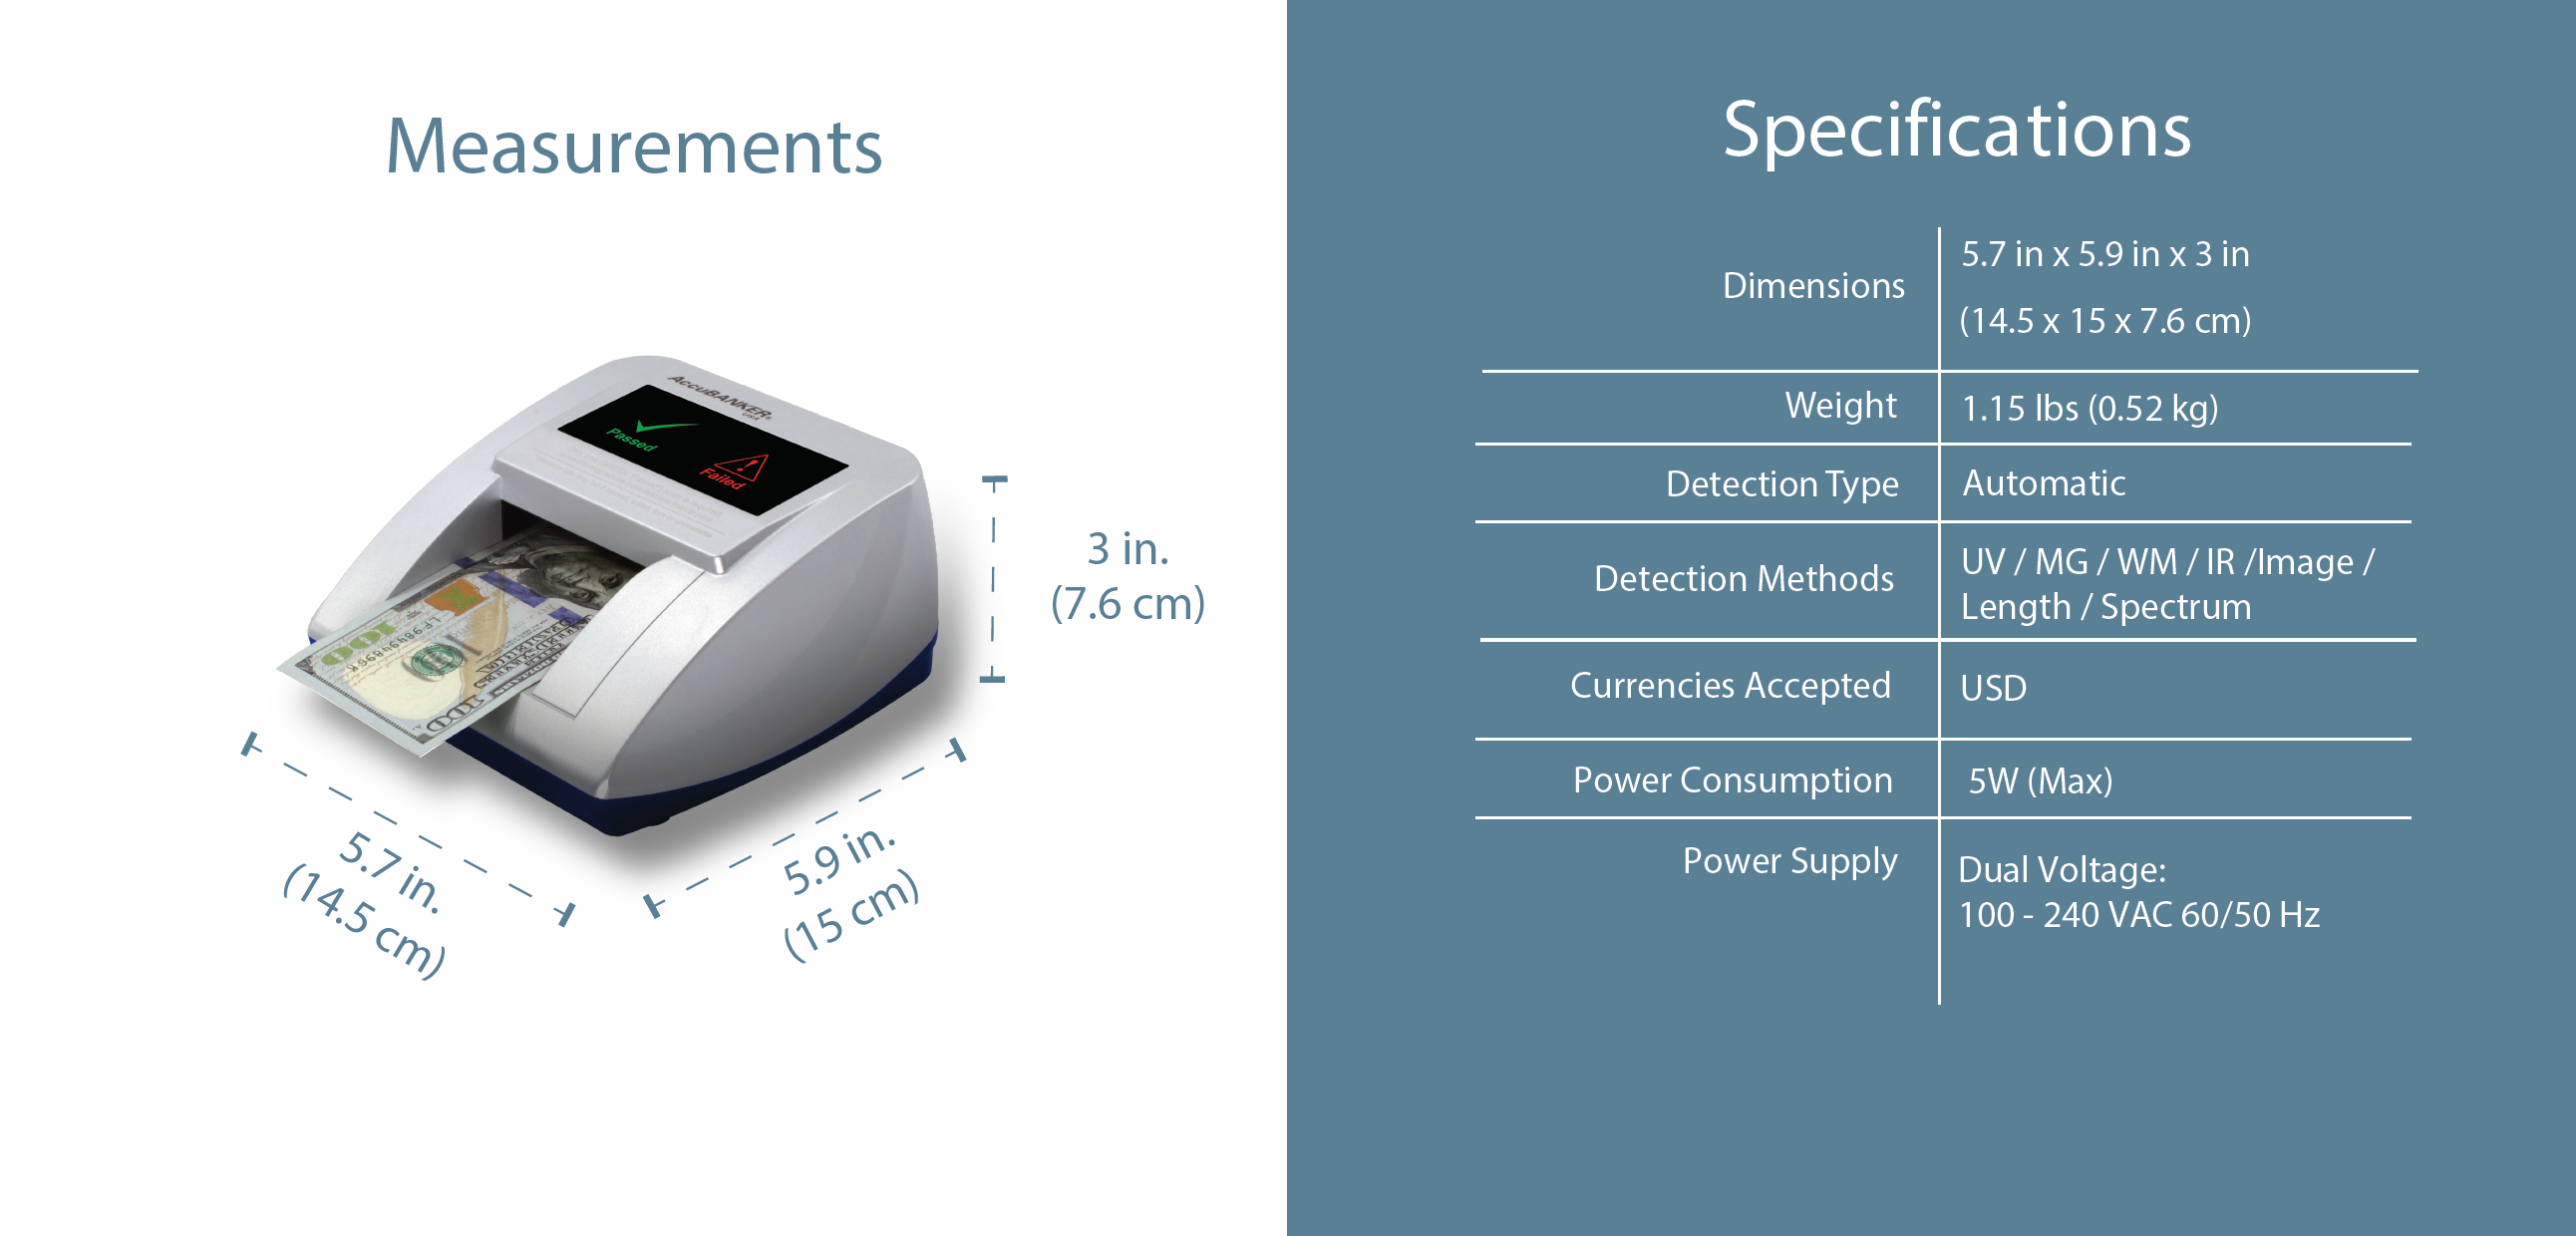 D470 Quadscan Counterfeit Detector Features & Specifications